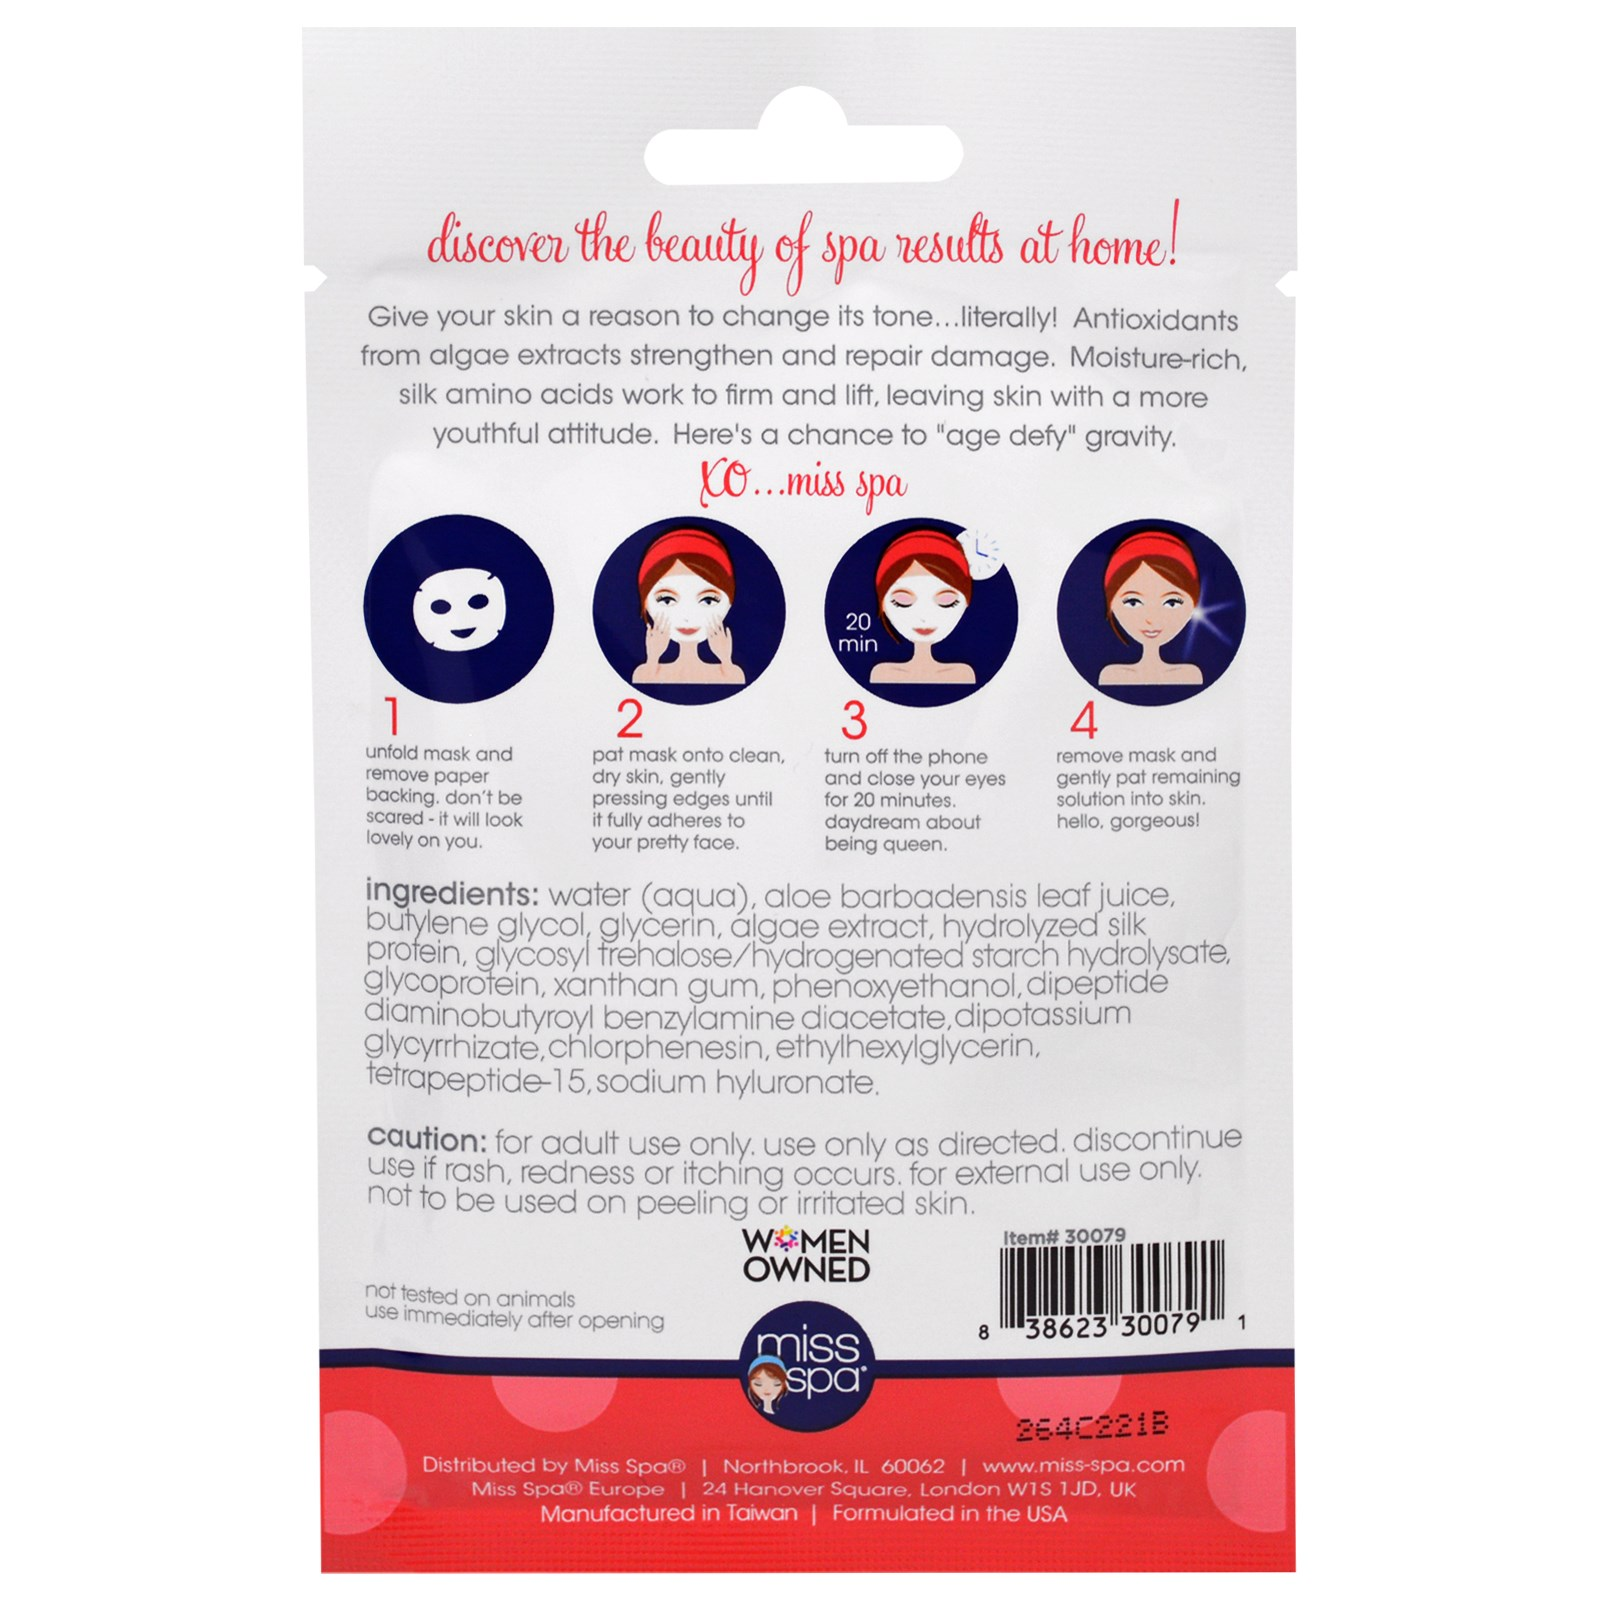 Miss Spa, Age Defy, 1 Pre-Treated Facial Sheet Mask(pack of 3) Hard Candy Eyem Tired, Lightweight Depuffing Eye Serum. 0.59 Oz (Pack of 4) + Old Spice Deadlock Spiking Glue, Travel Size, .84 Oz